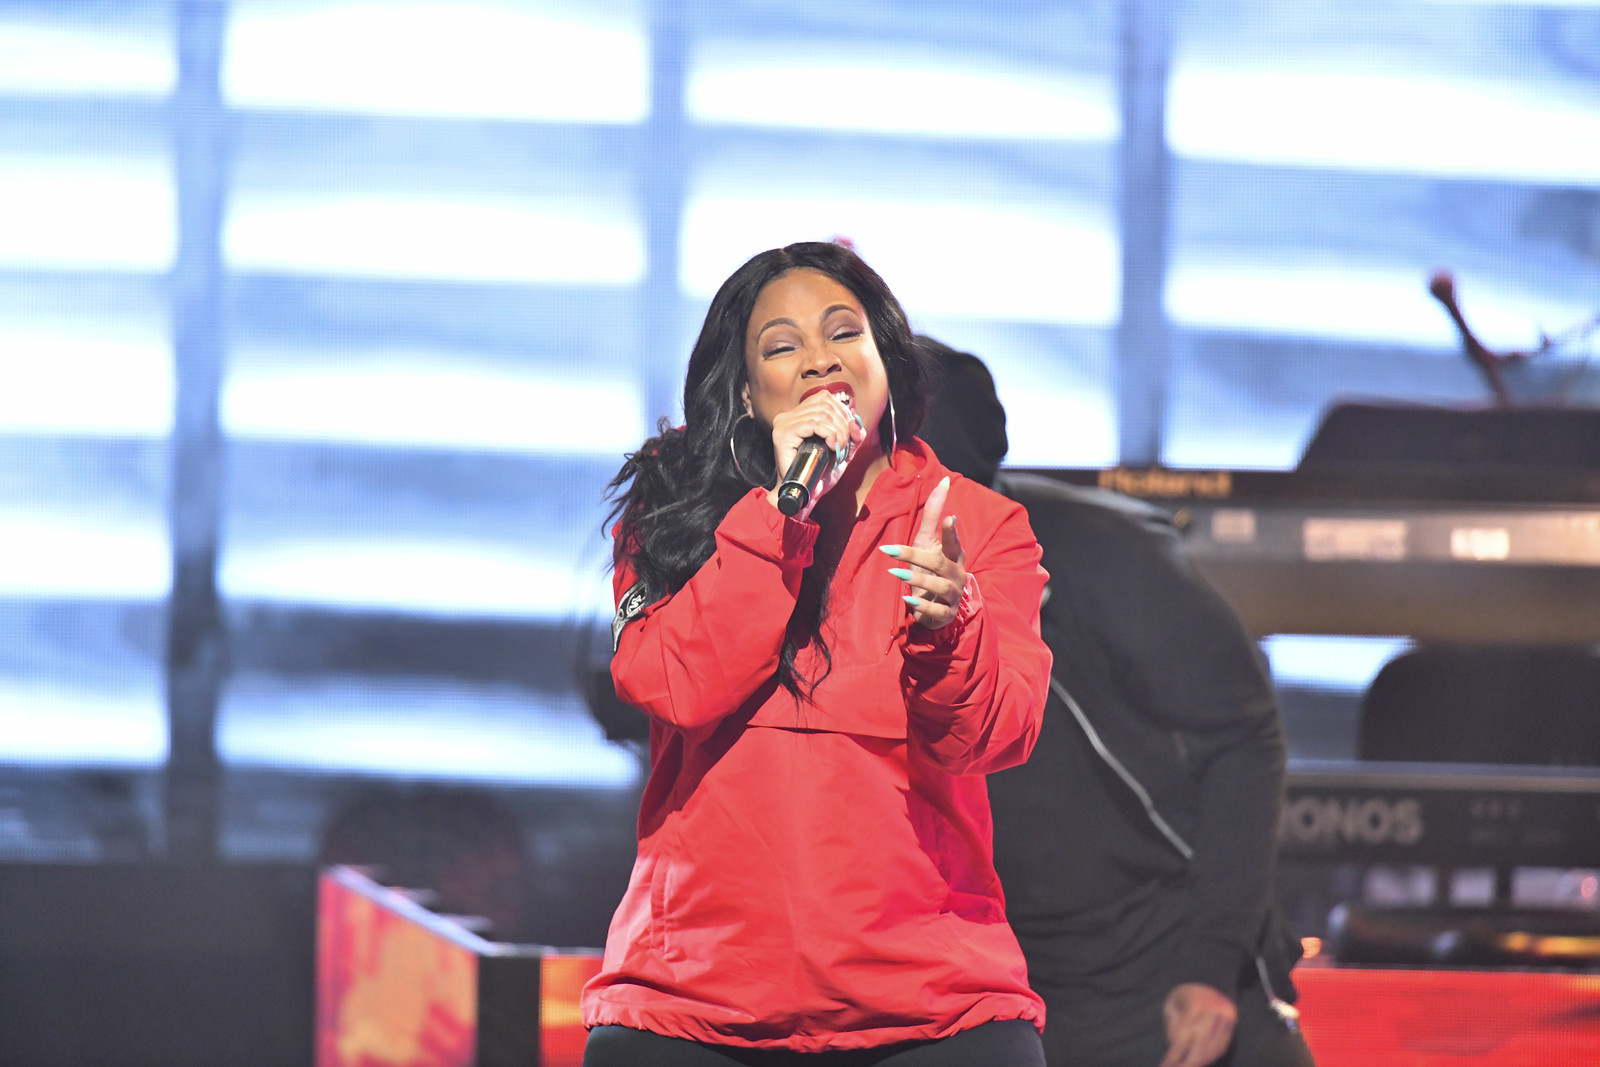 Monie Love performs